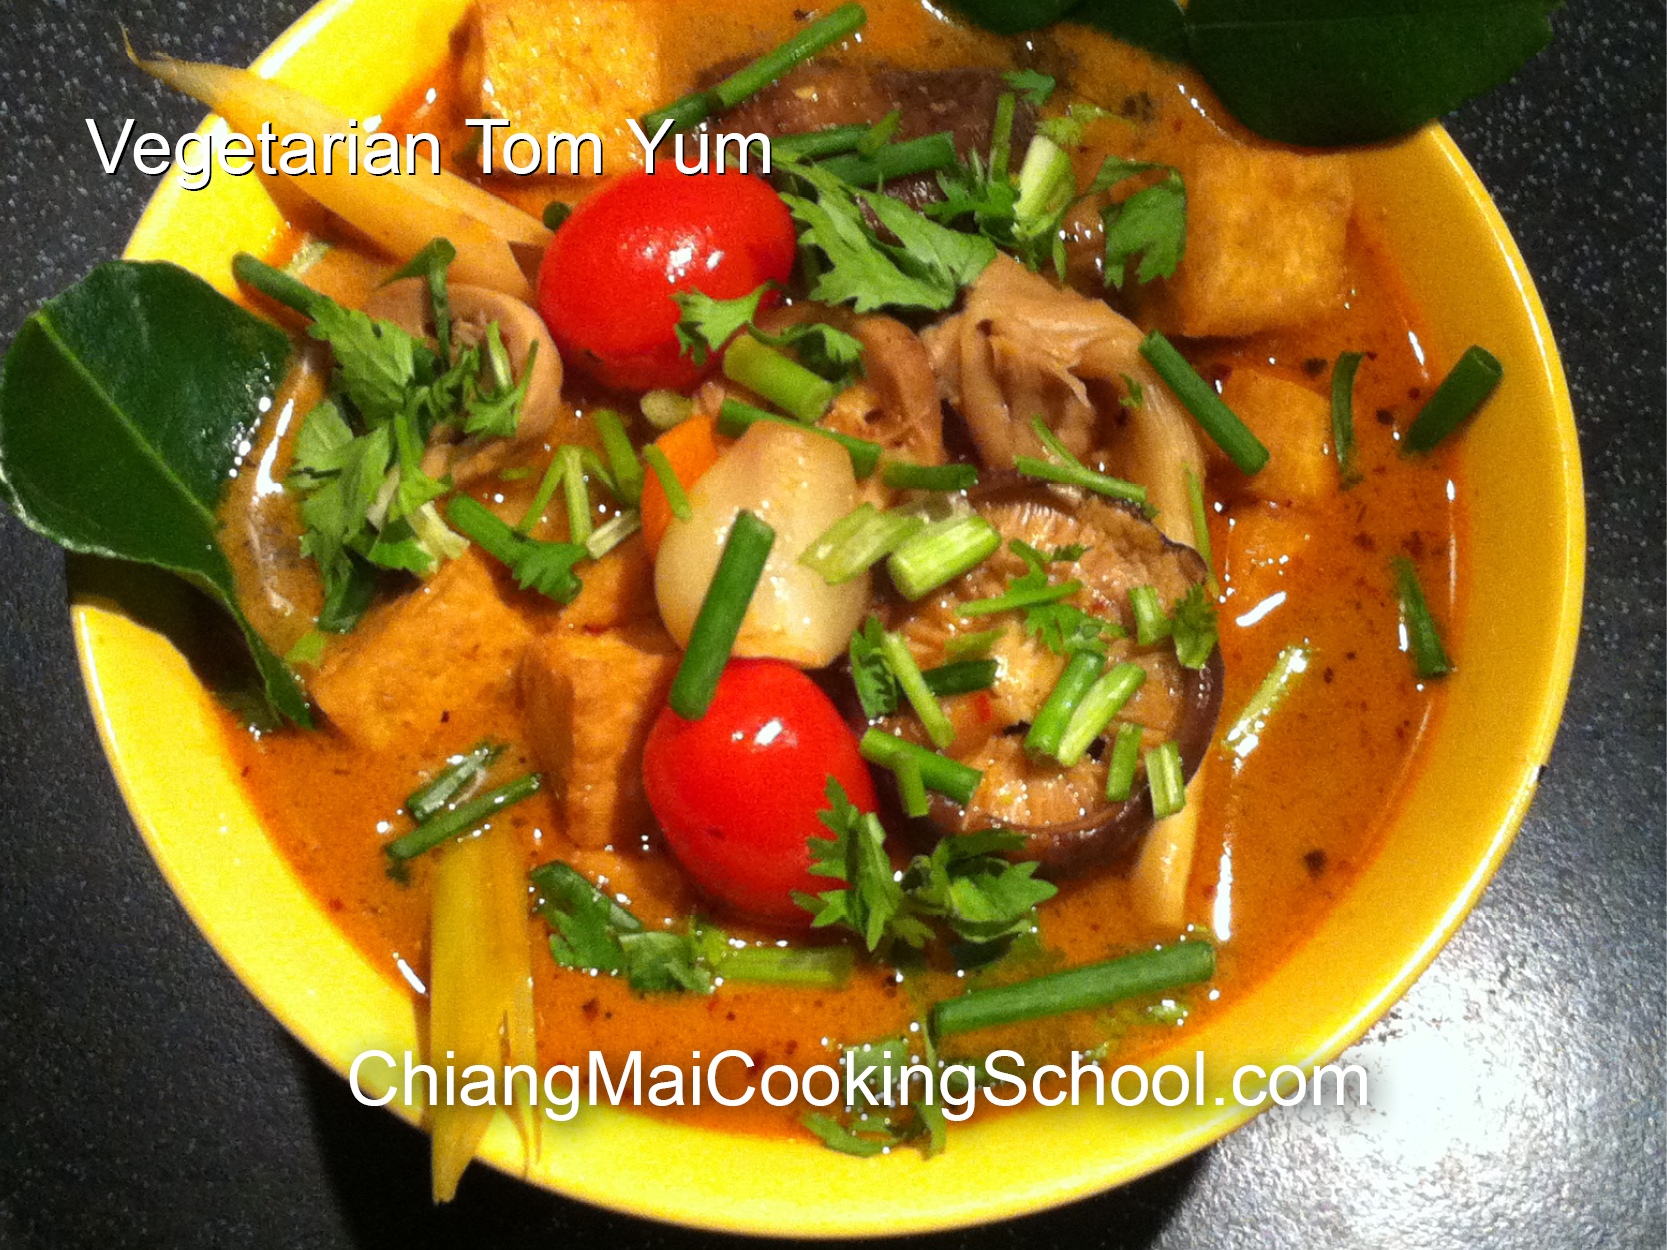 Delicious Sweet Vegetarian Tom Yum from Chiang Mai Cooking School